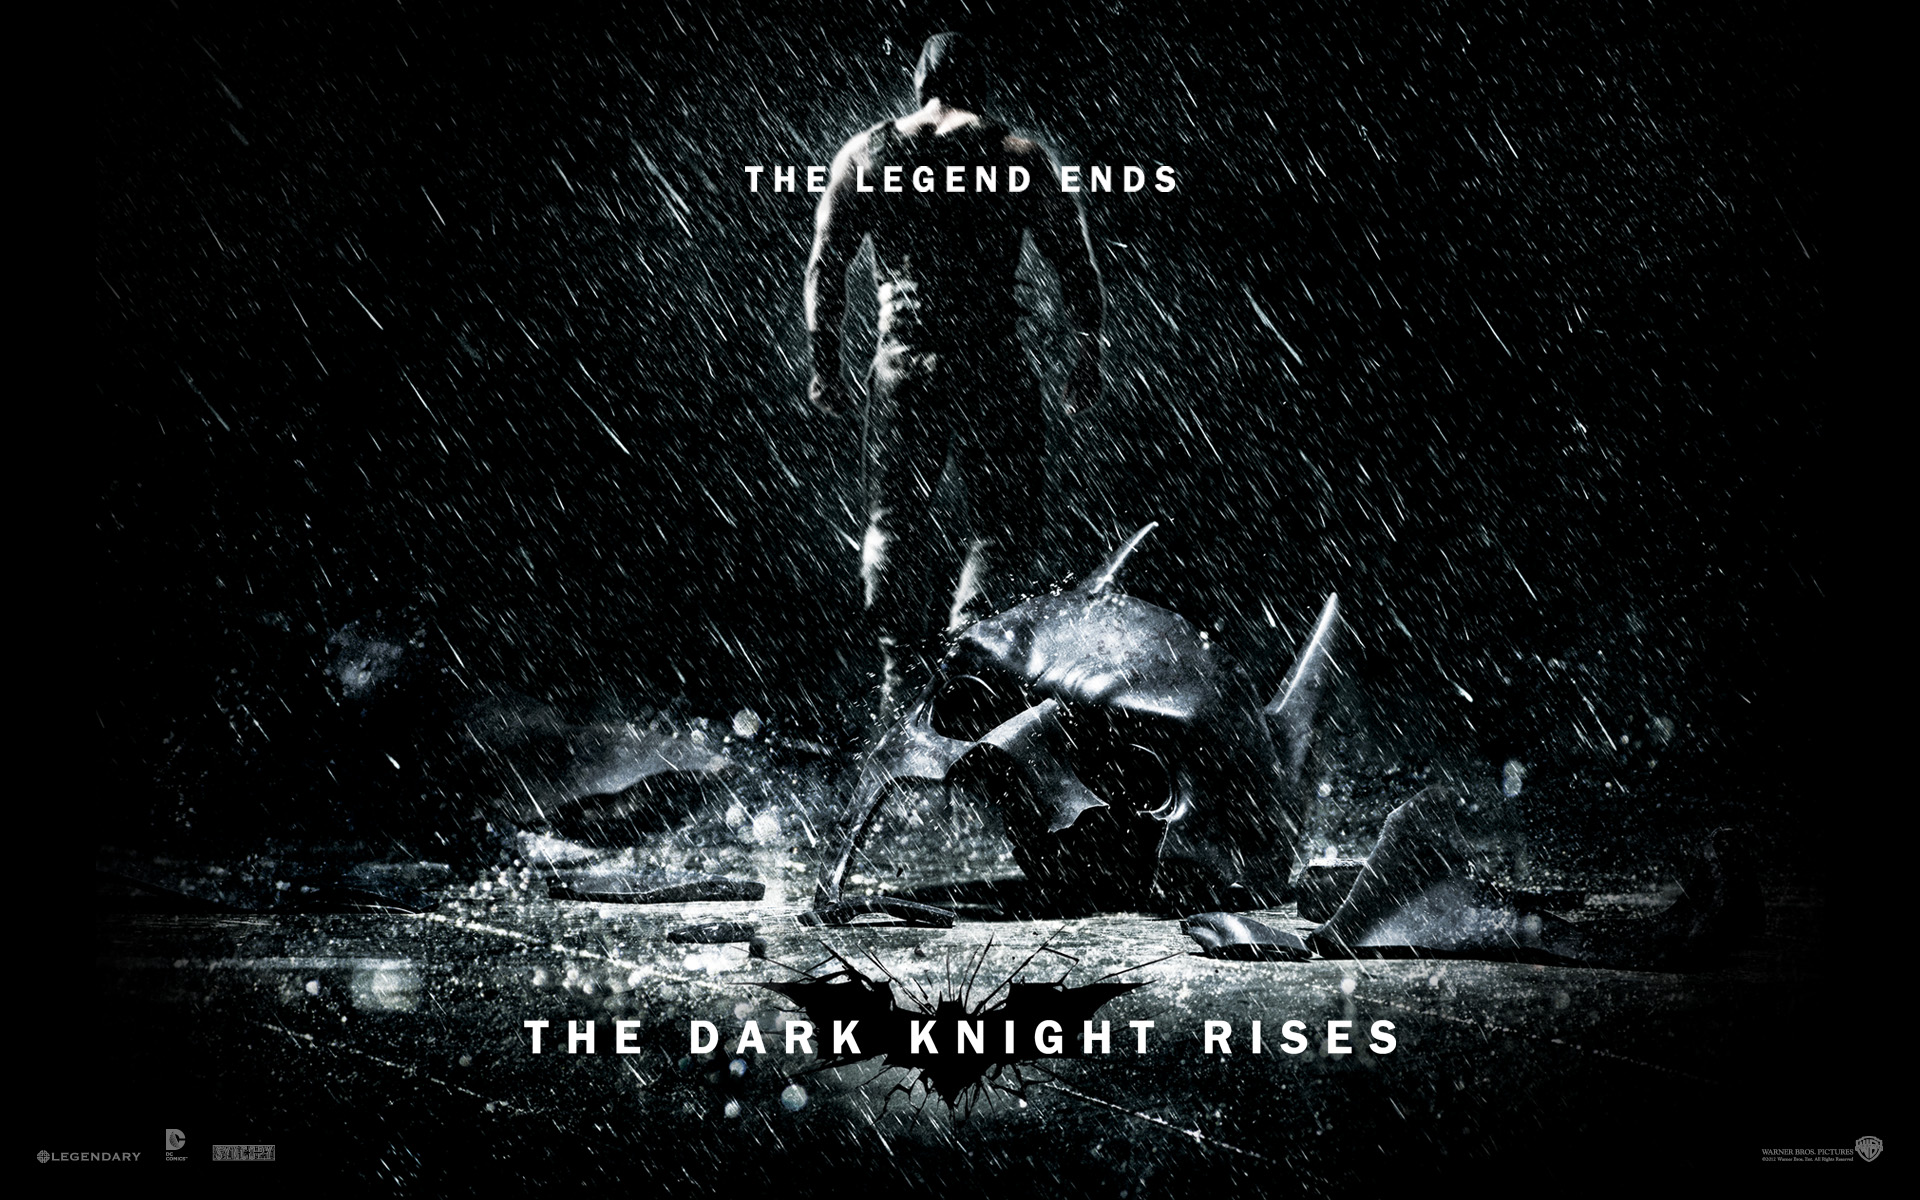 The Dark Knight Rises Wallpapers HD Wallpapers 1920x1200